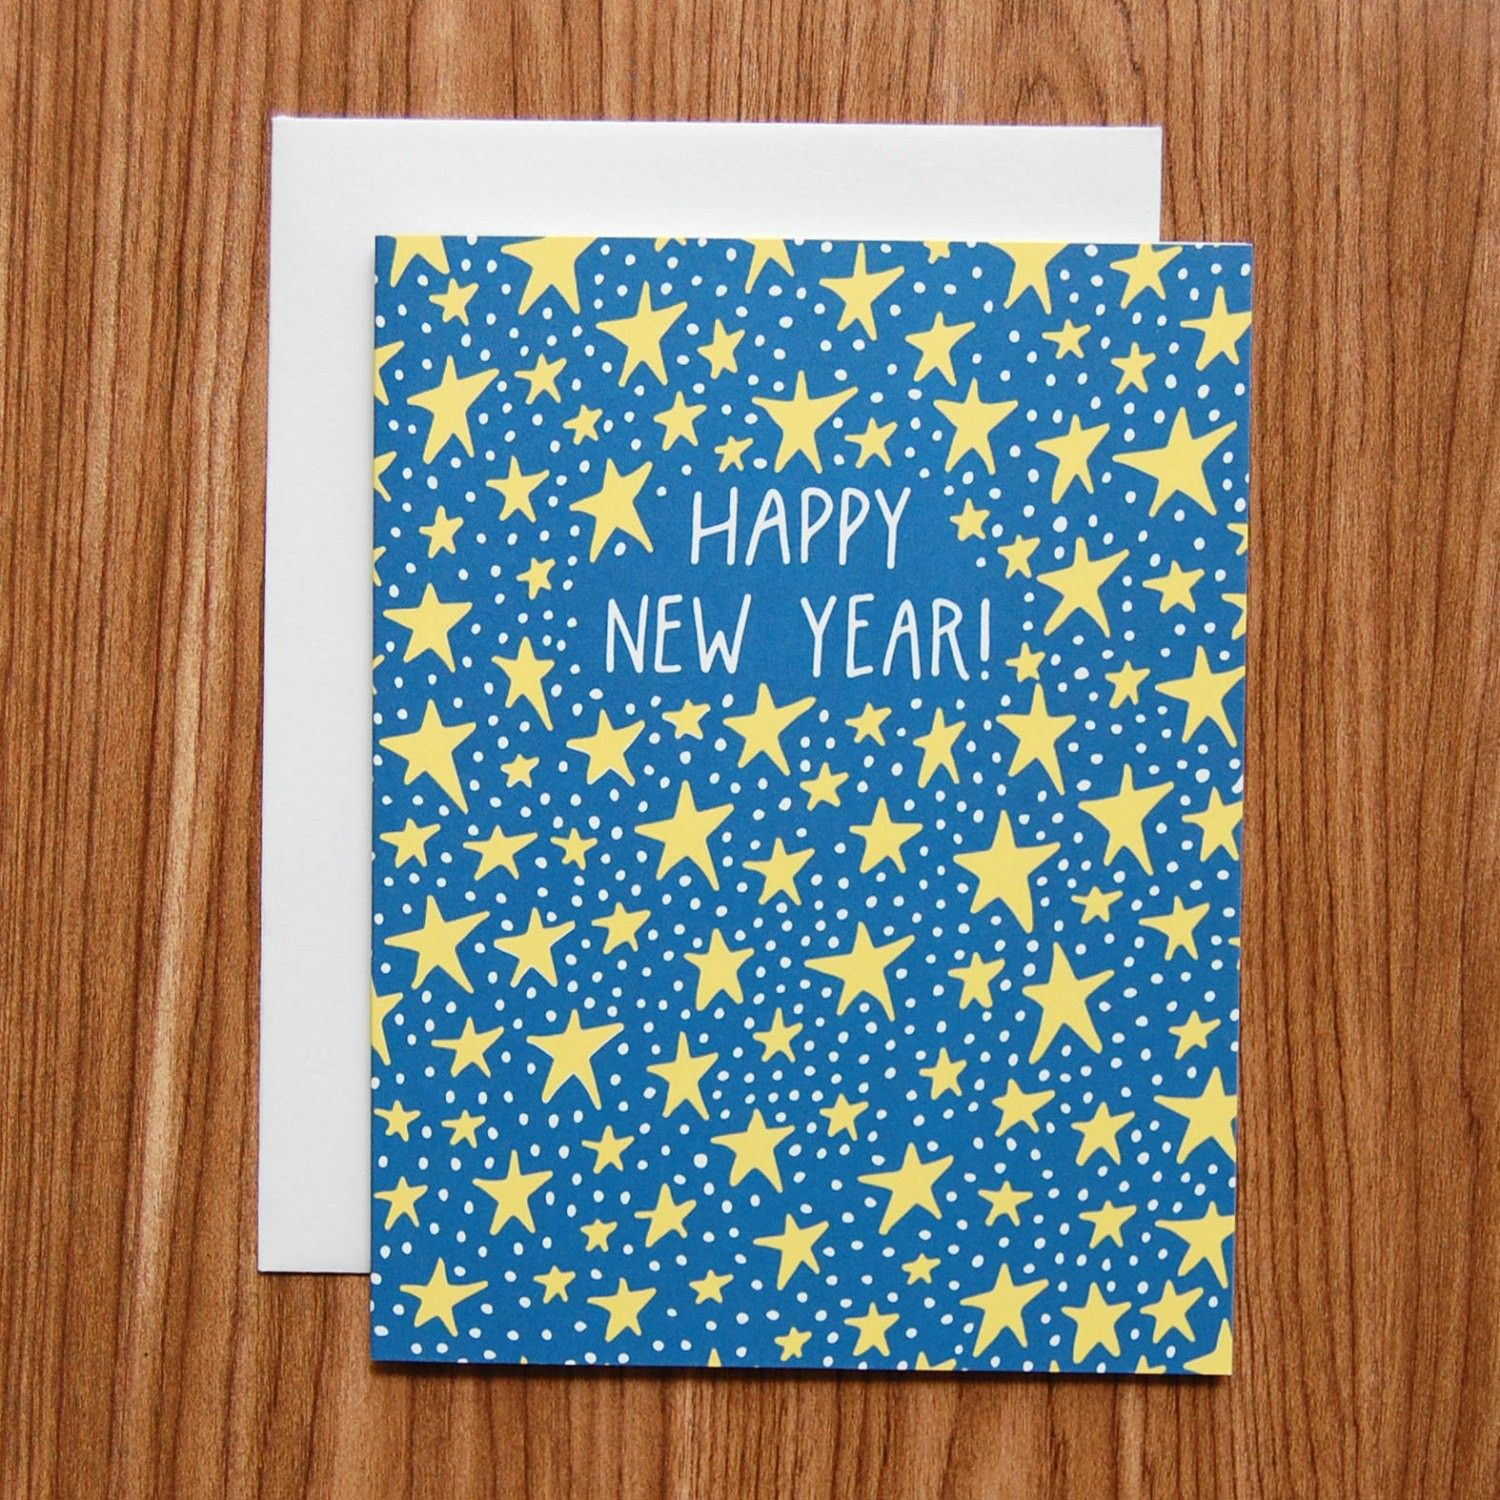 Happy New Year Boxed Set of Cards Card 2015 new year